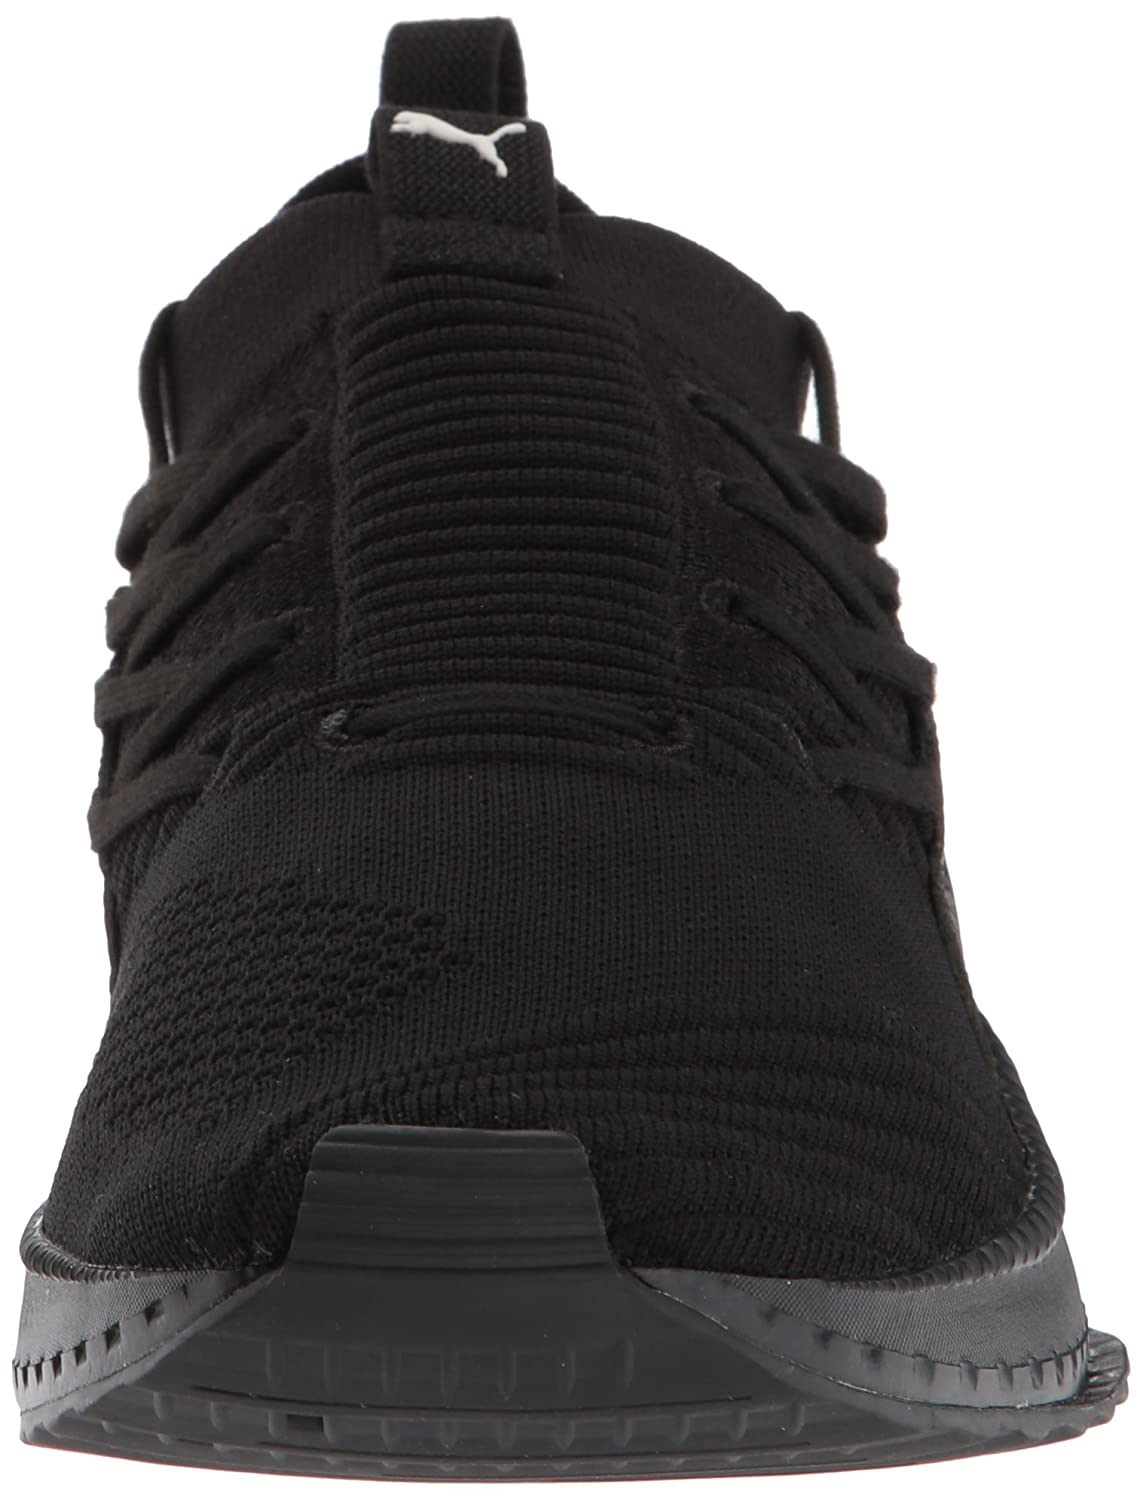 Puma Men s Tsugi Jun Sneakers  Buy Online at Low Prices in India - Amazon.in 048172b2b